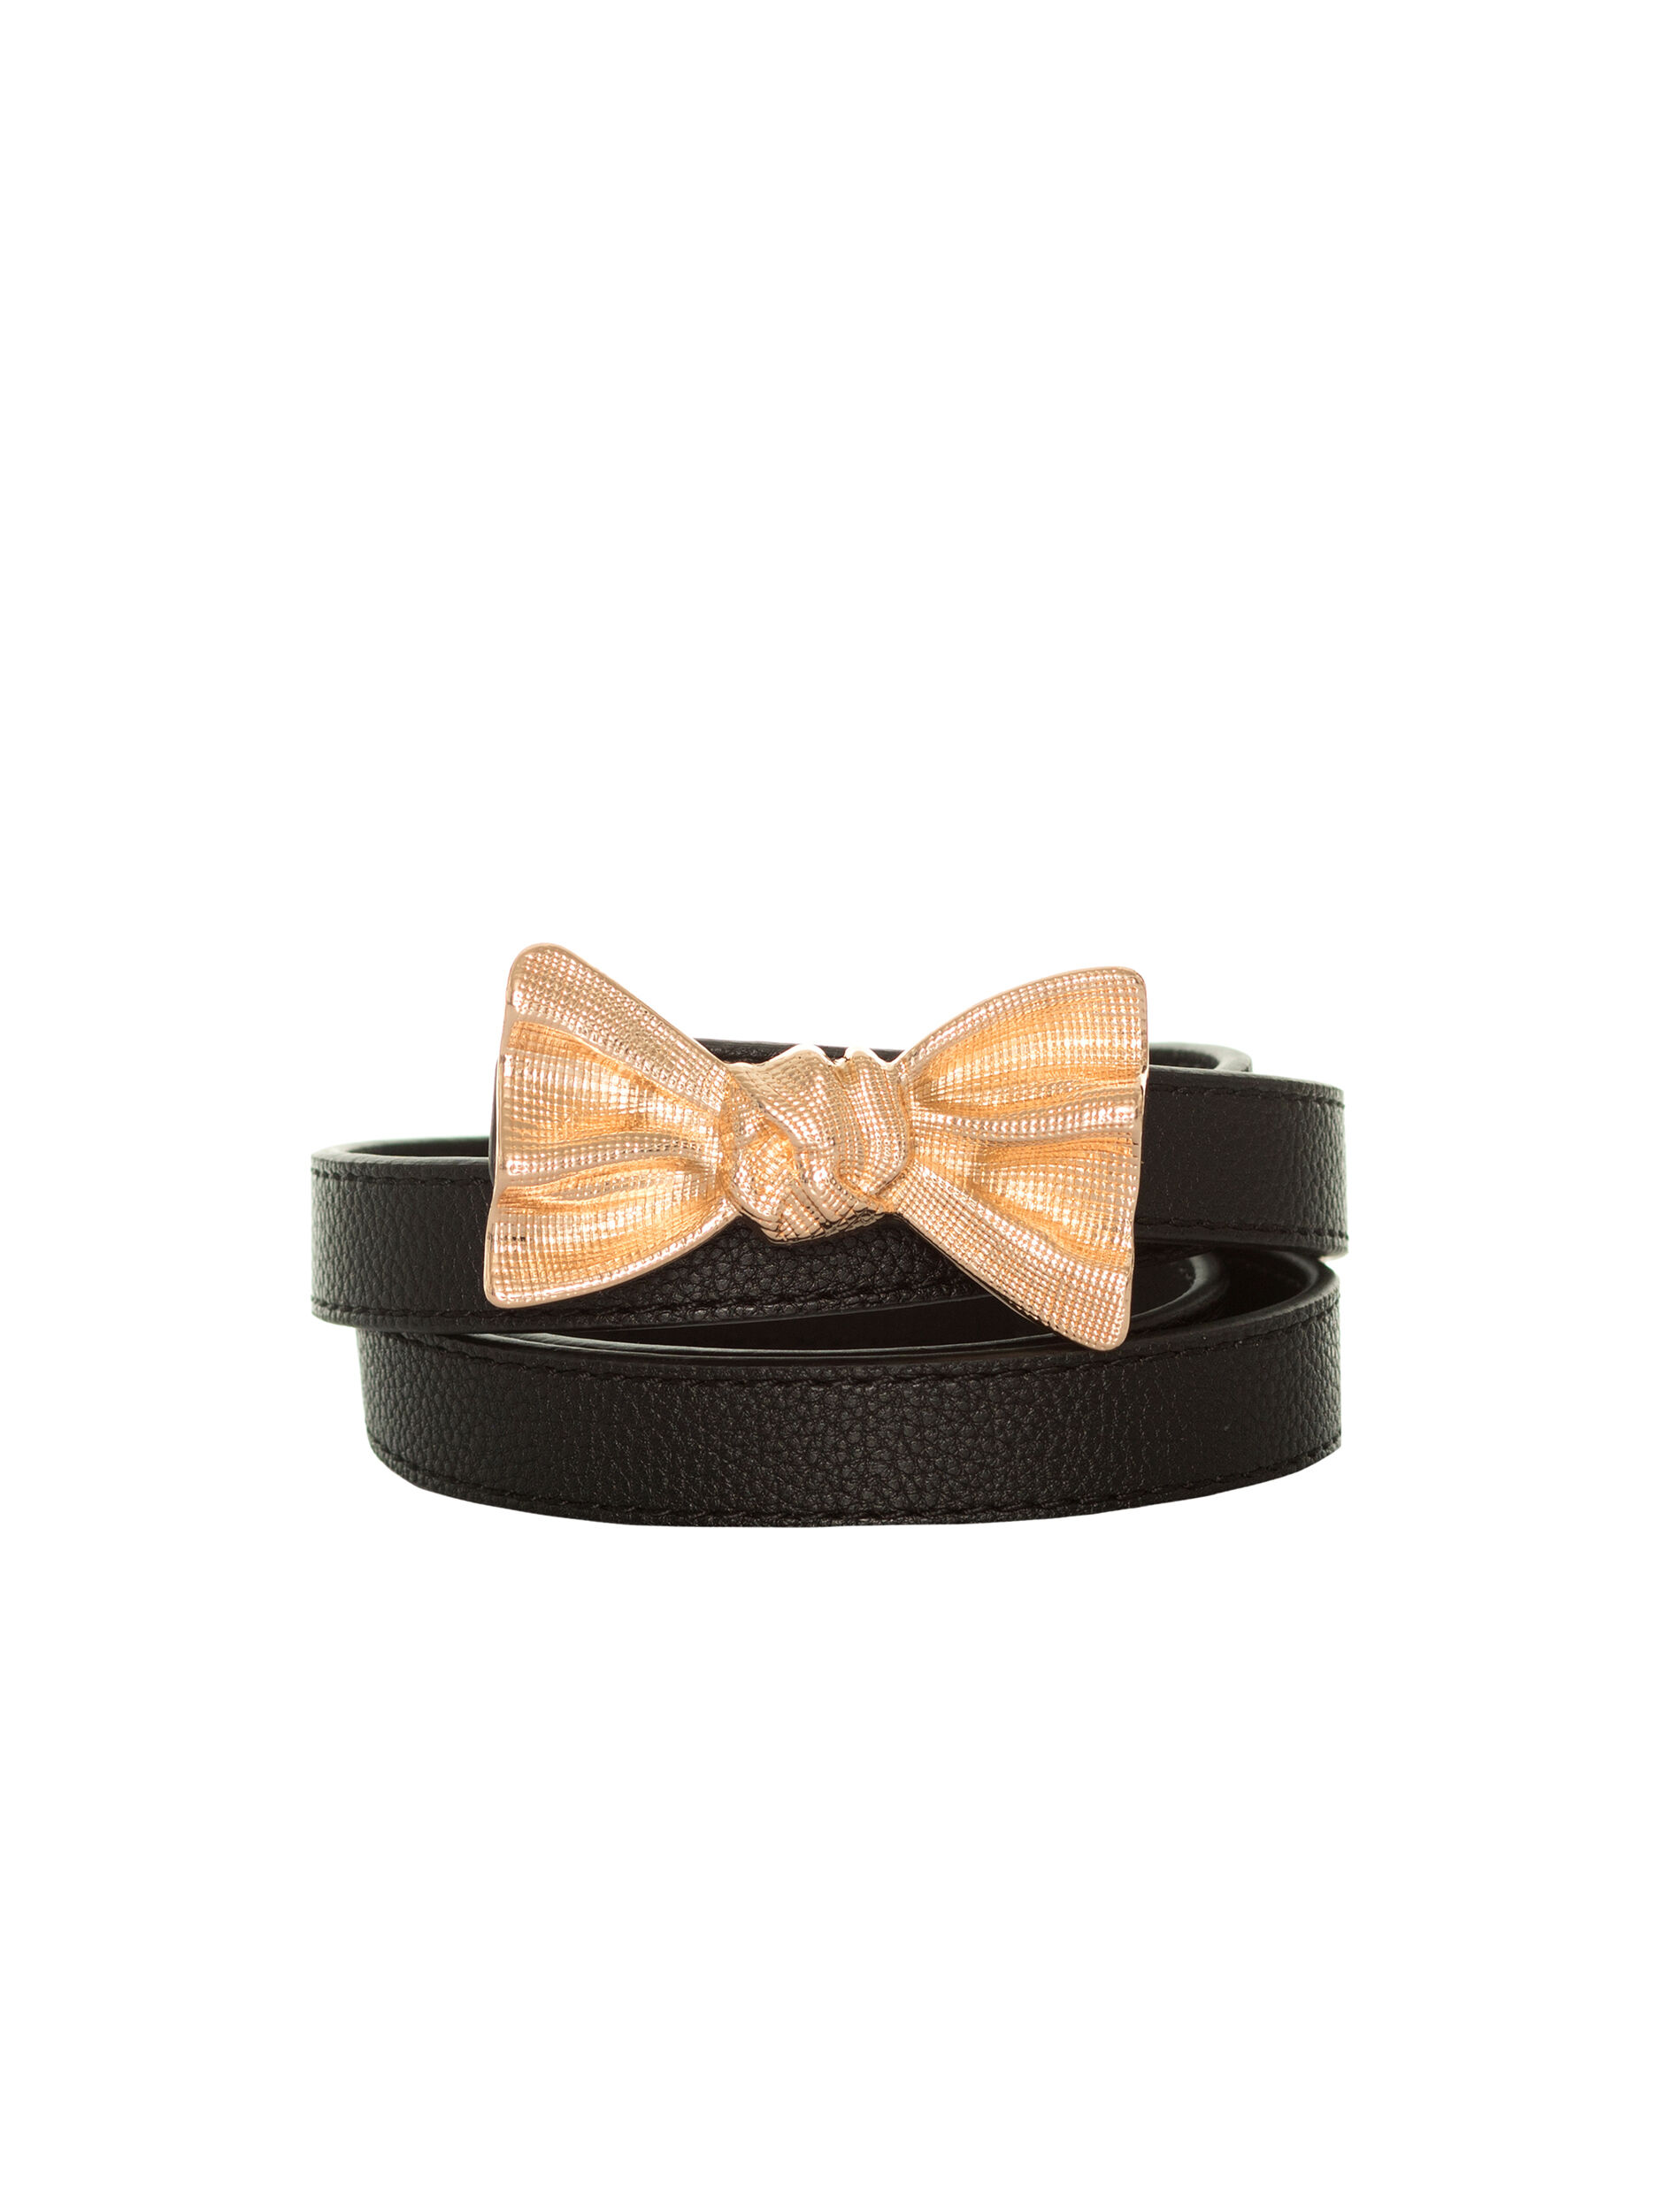 Little Bow Belt